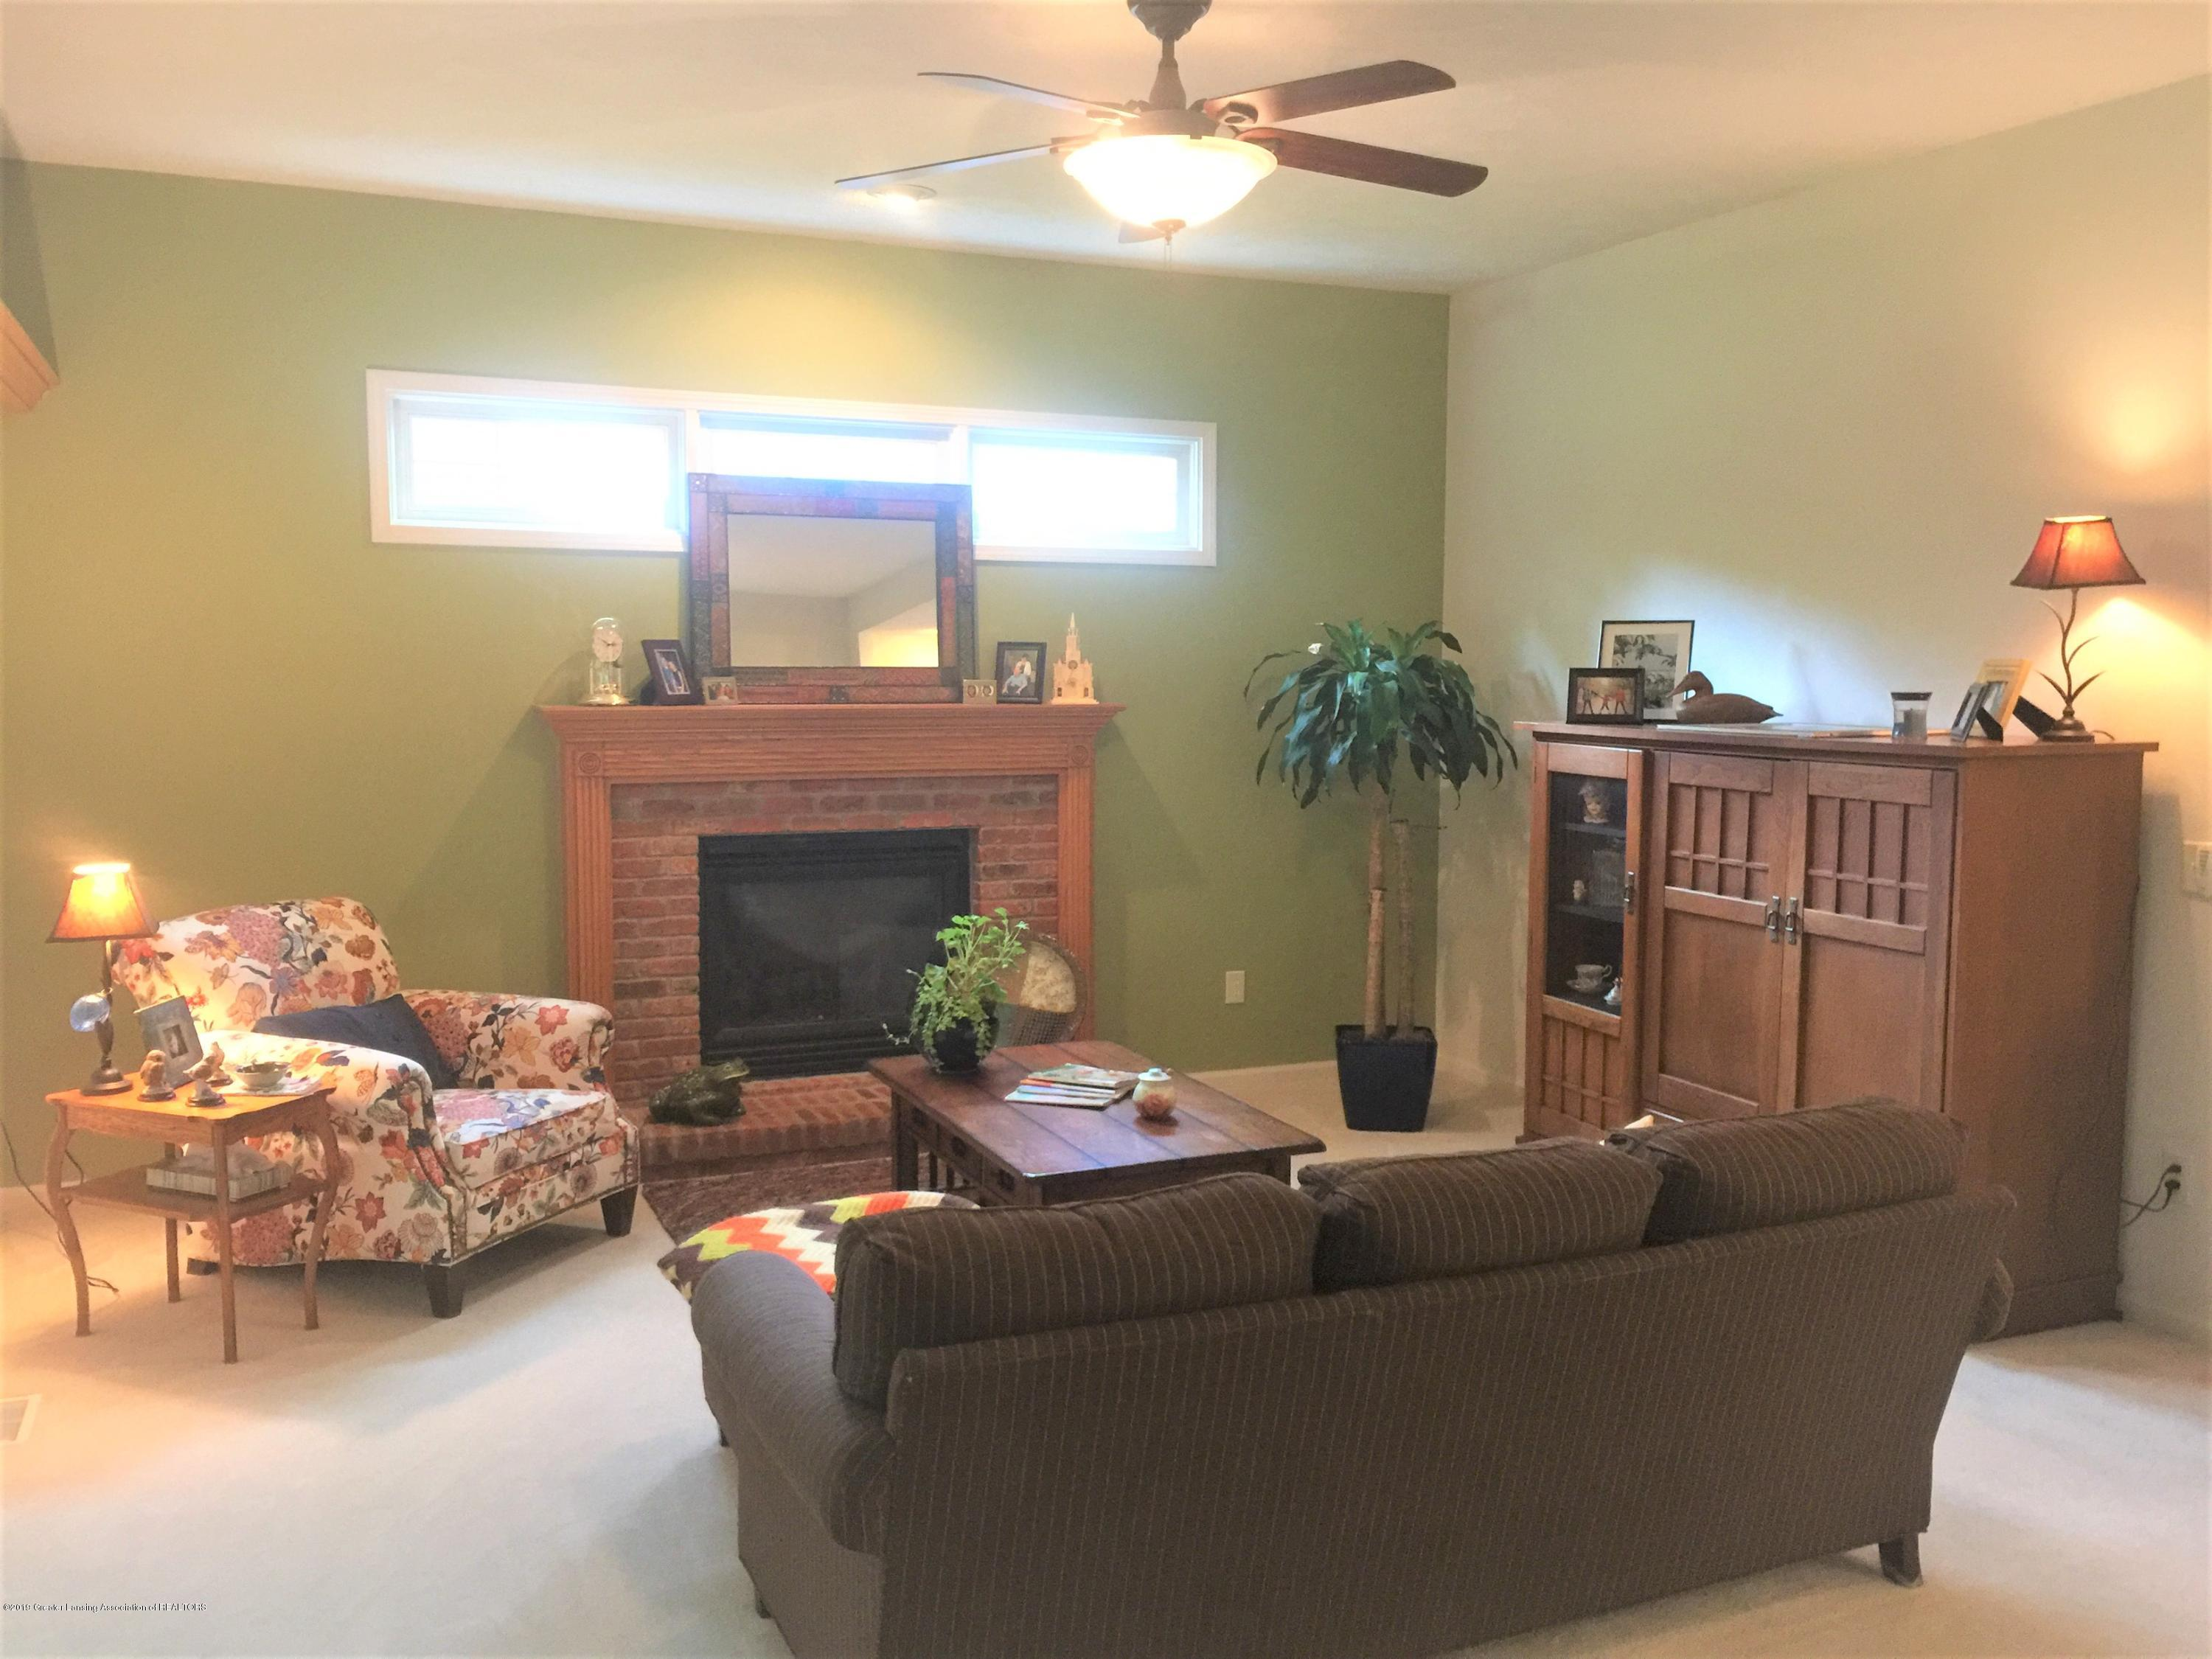 13612 Canyonwood Cl - living room 1 - 13